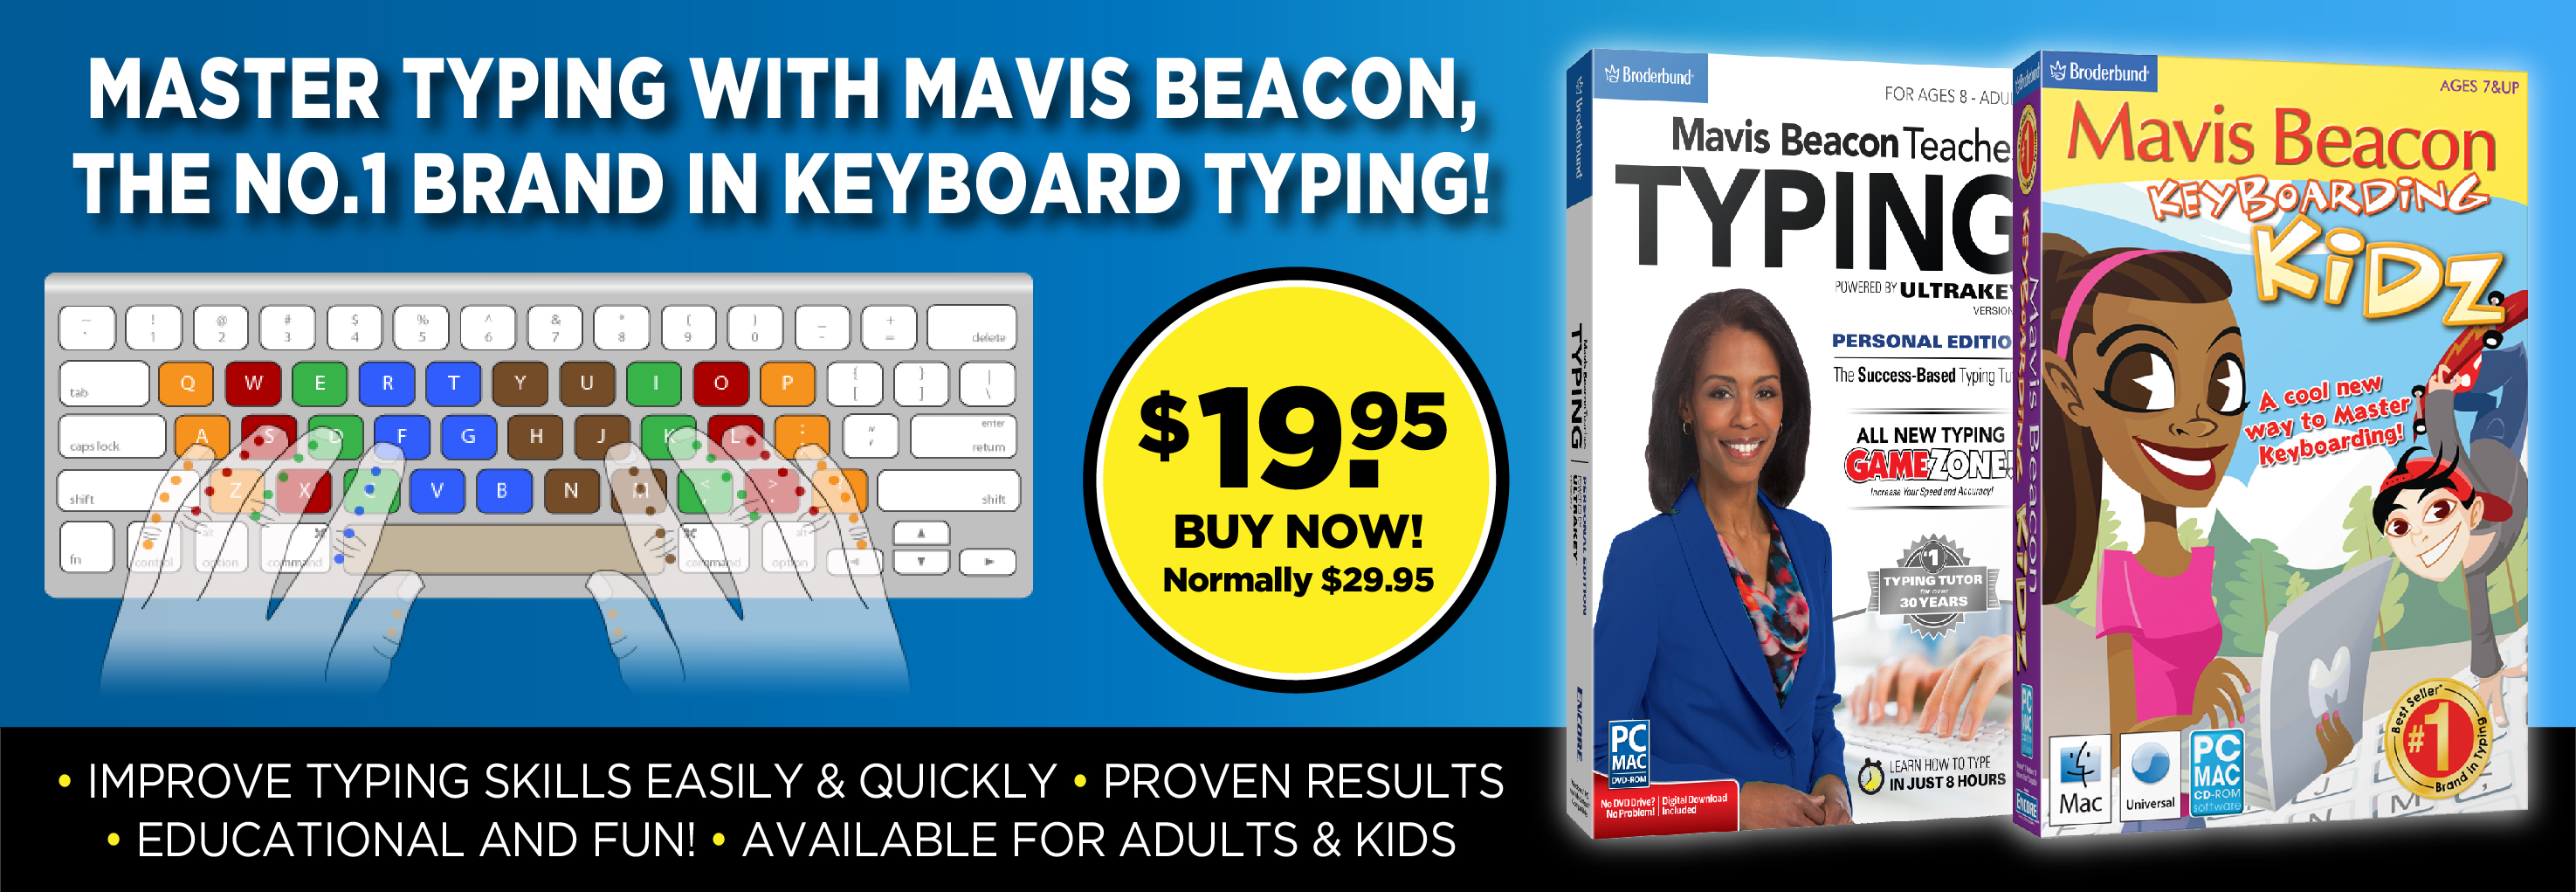 Mavis Beacon Kidz/Personal Edition Offer